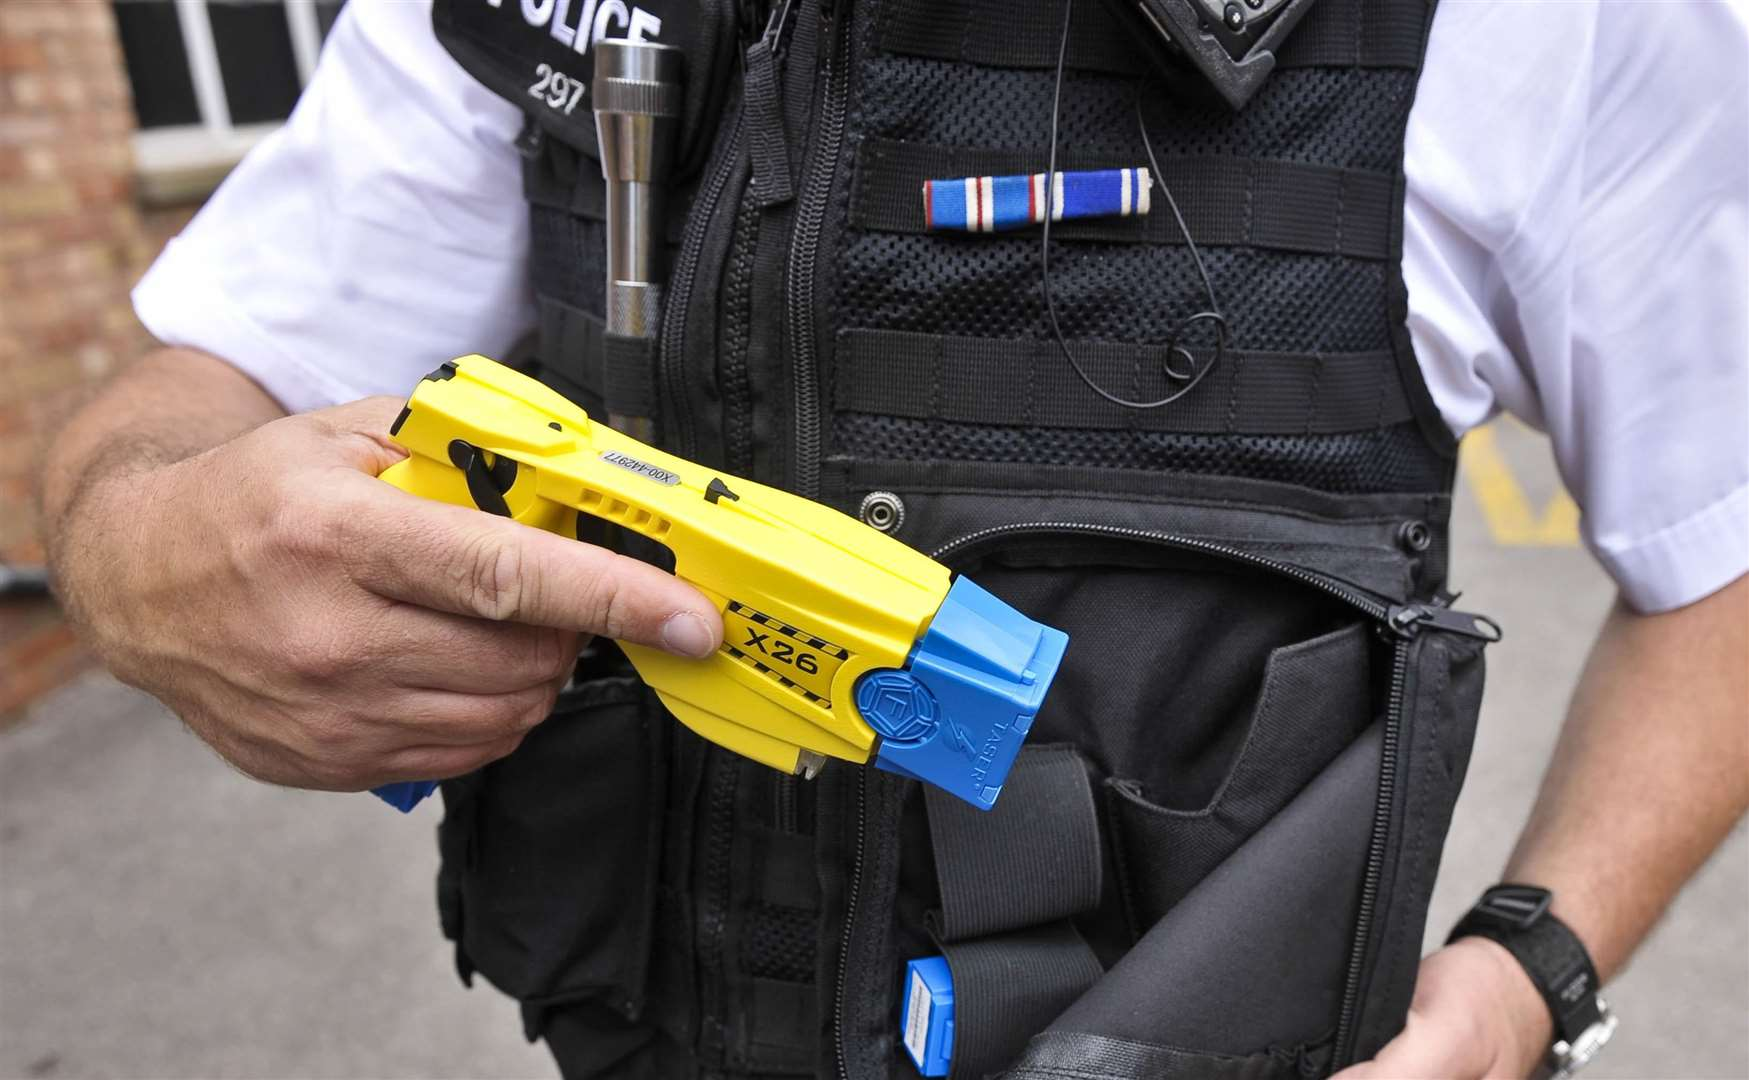 An underwater search team on training was searching for a police Taser like this one, which was lost in the River Welland on June 25